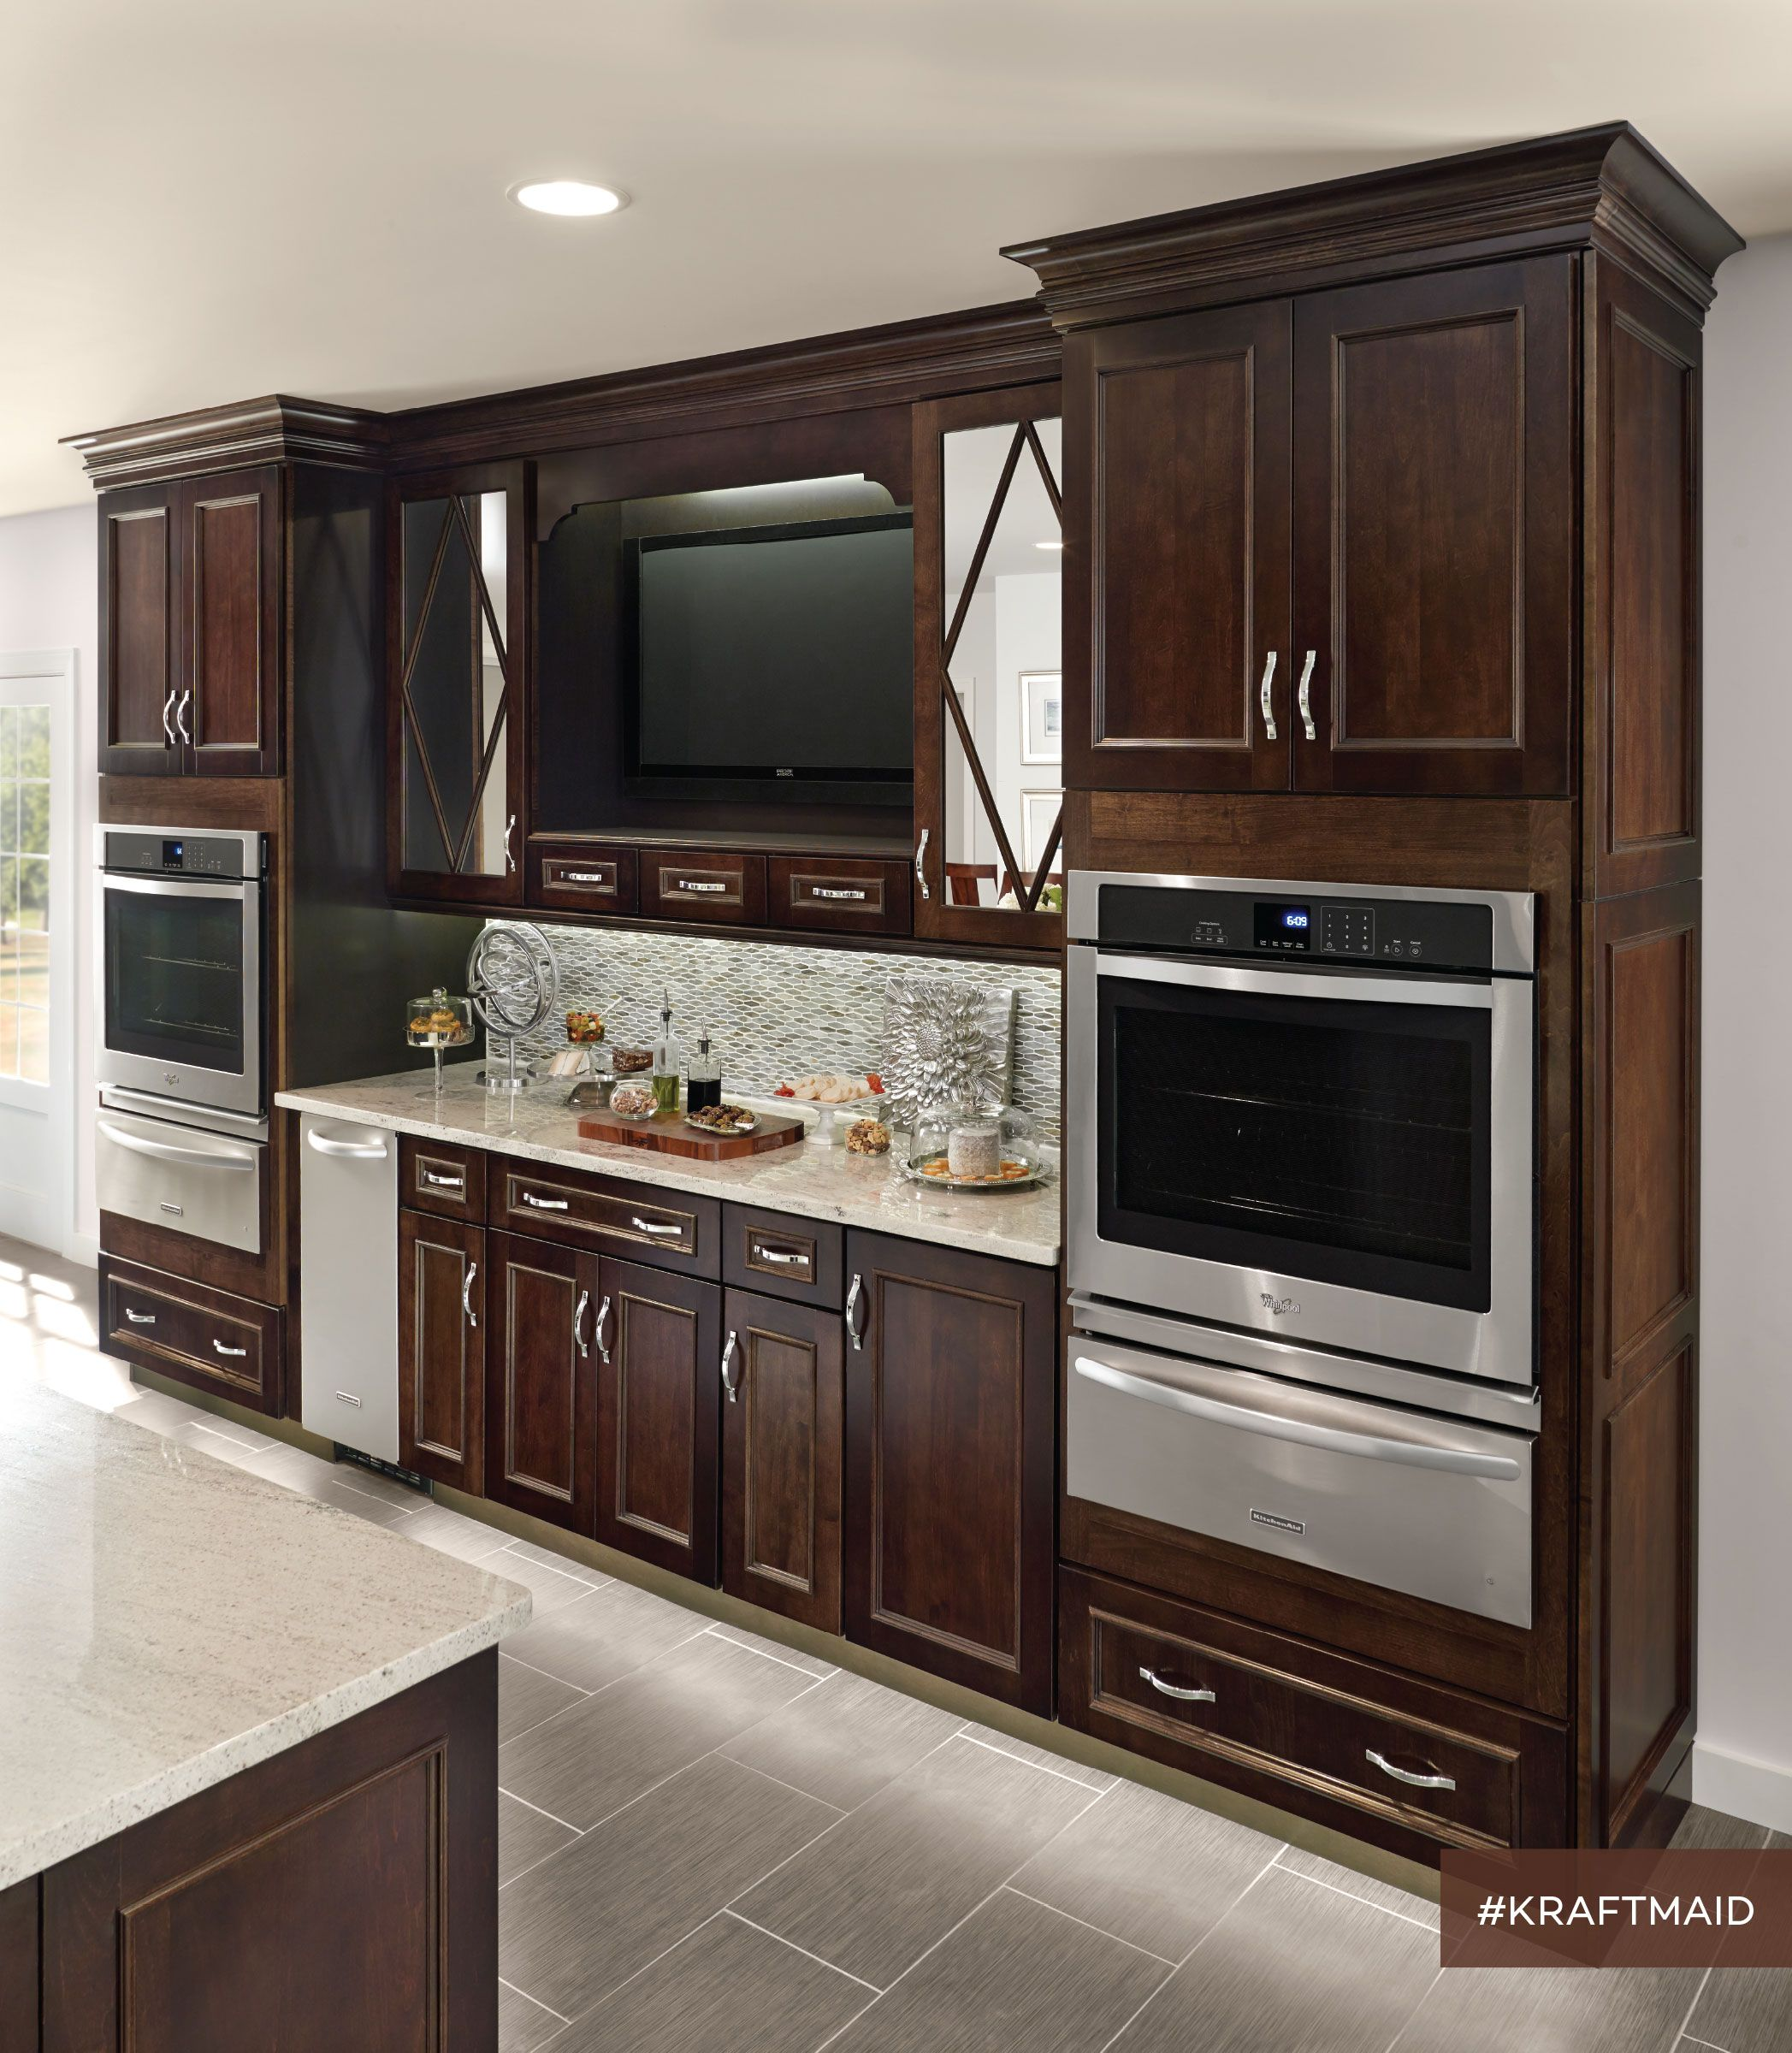 Ace kitchen direct cabinets - Shenandoah Cabinetry Kitchen In Dominion Cherry Chocolate Cherry Cabinets Pinterest Kitchens